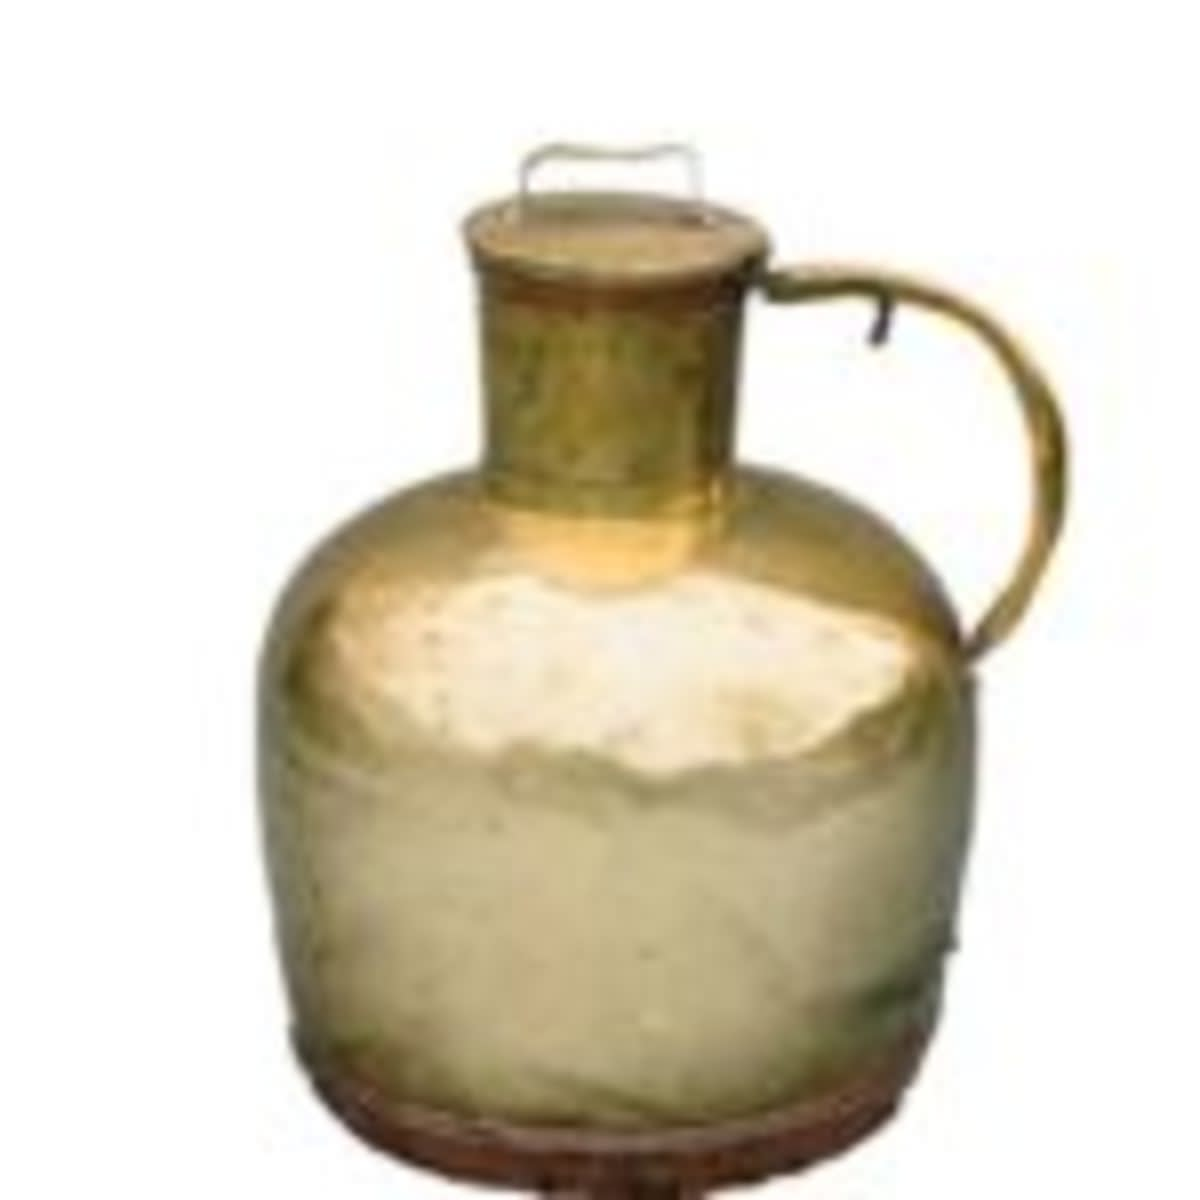 This is a rare example of a four gallon brass milk can that dates back to the early 1800s or possibly the late 18th century.